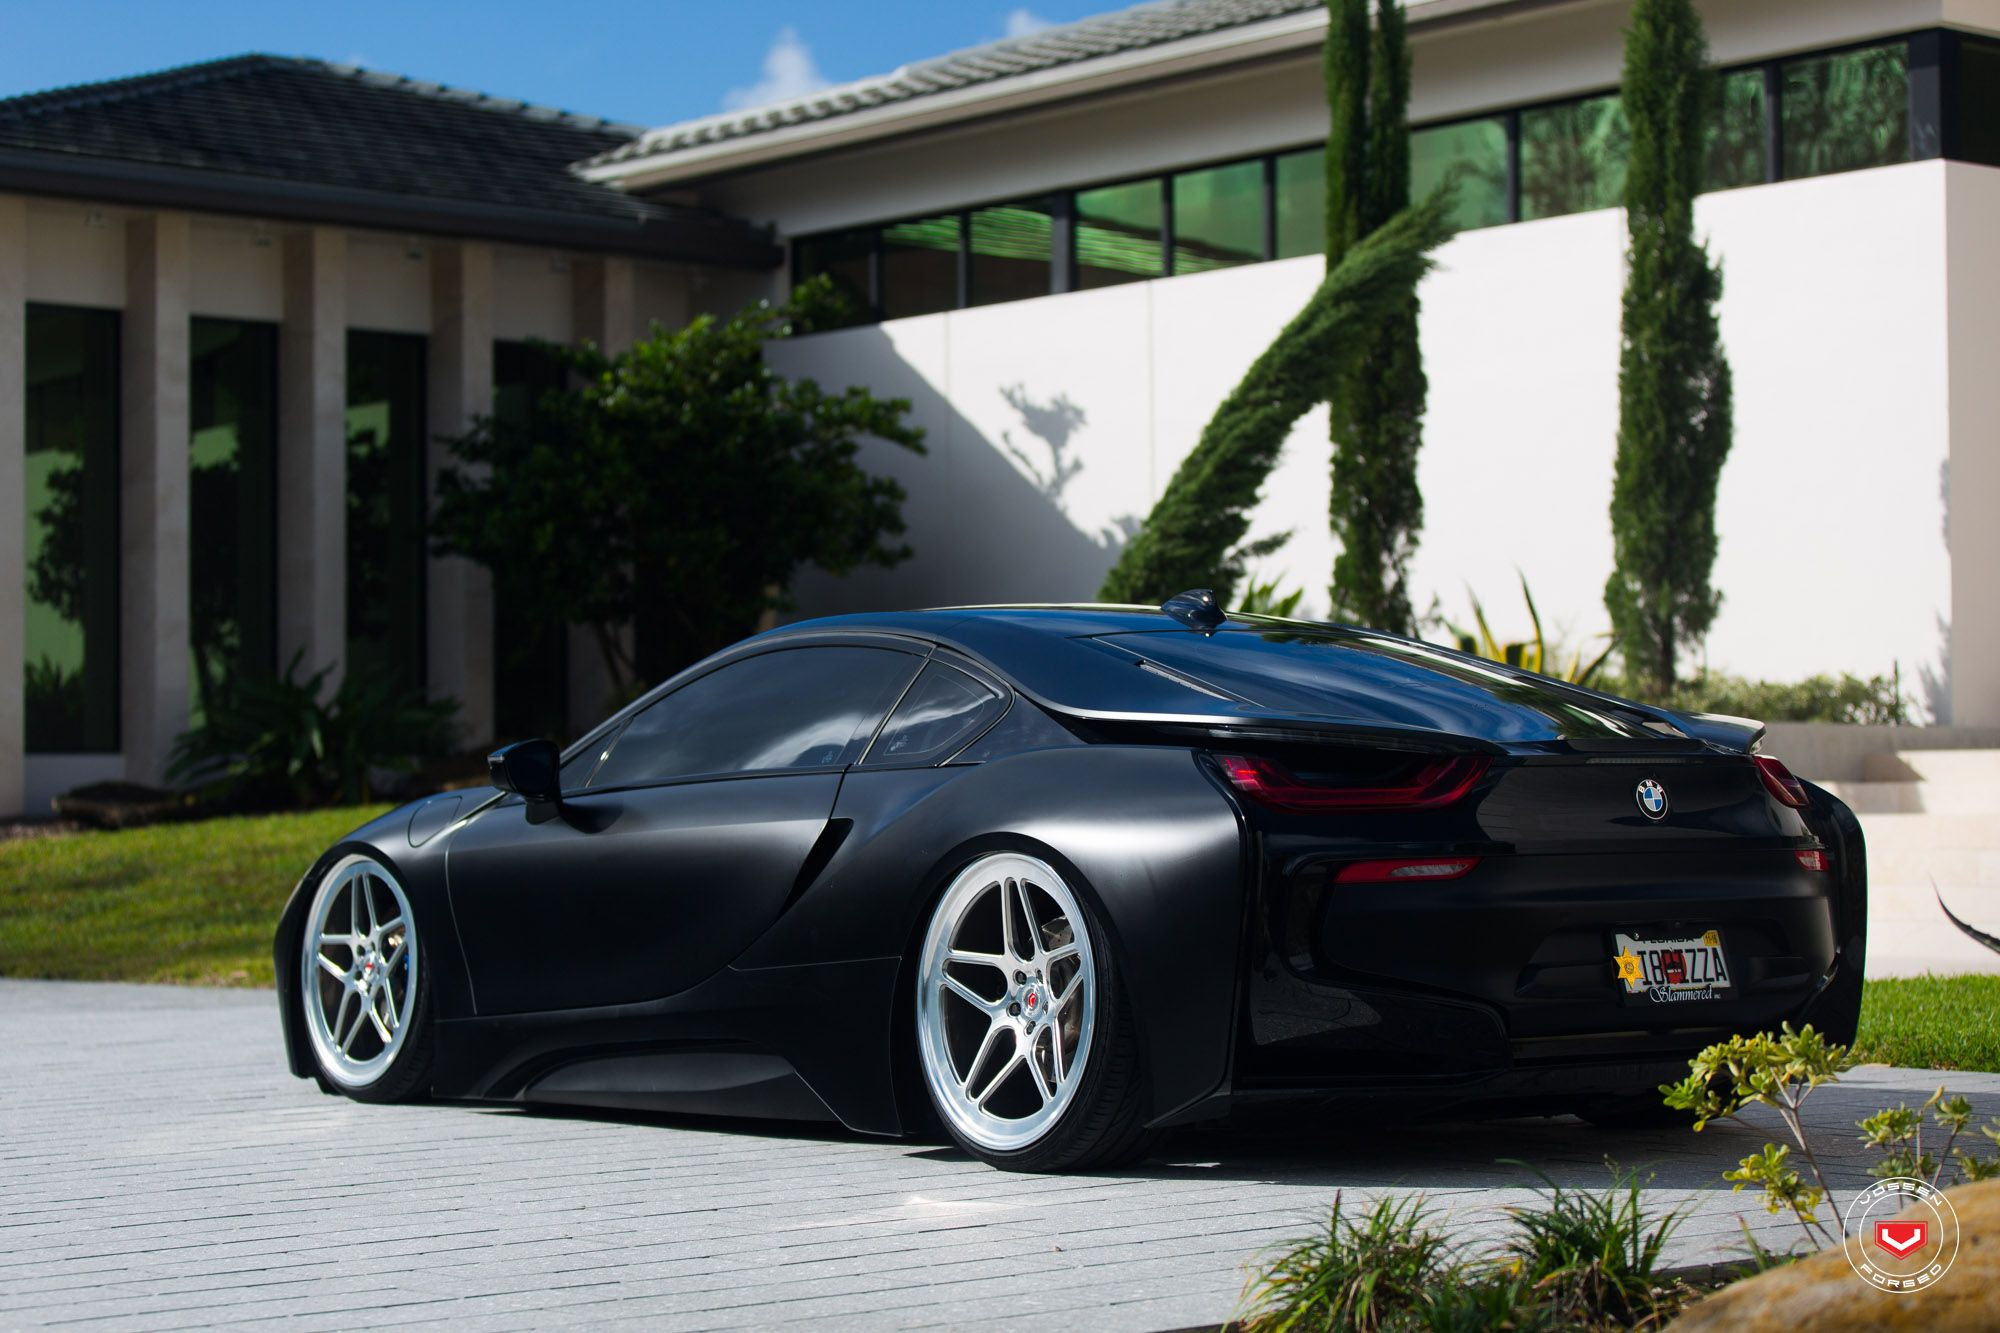 Bmw I8 Edrive Coupe Vossen Wheels Black Pearl Provocative